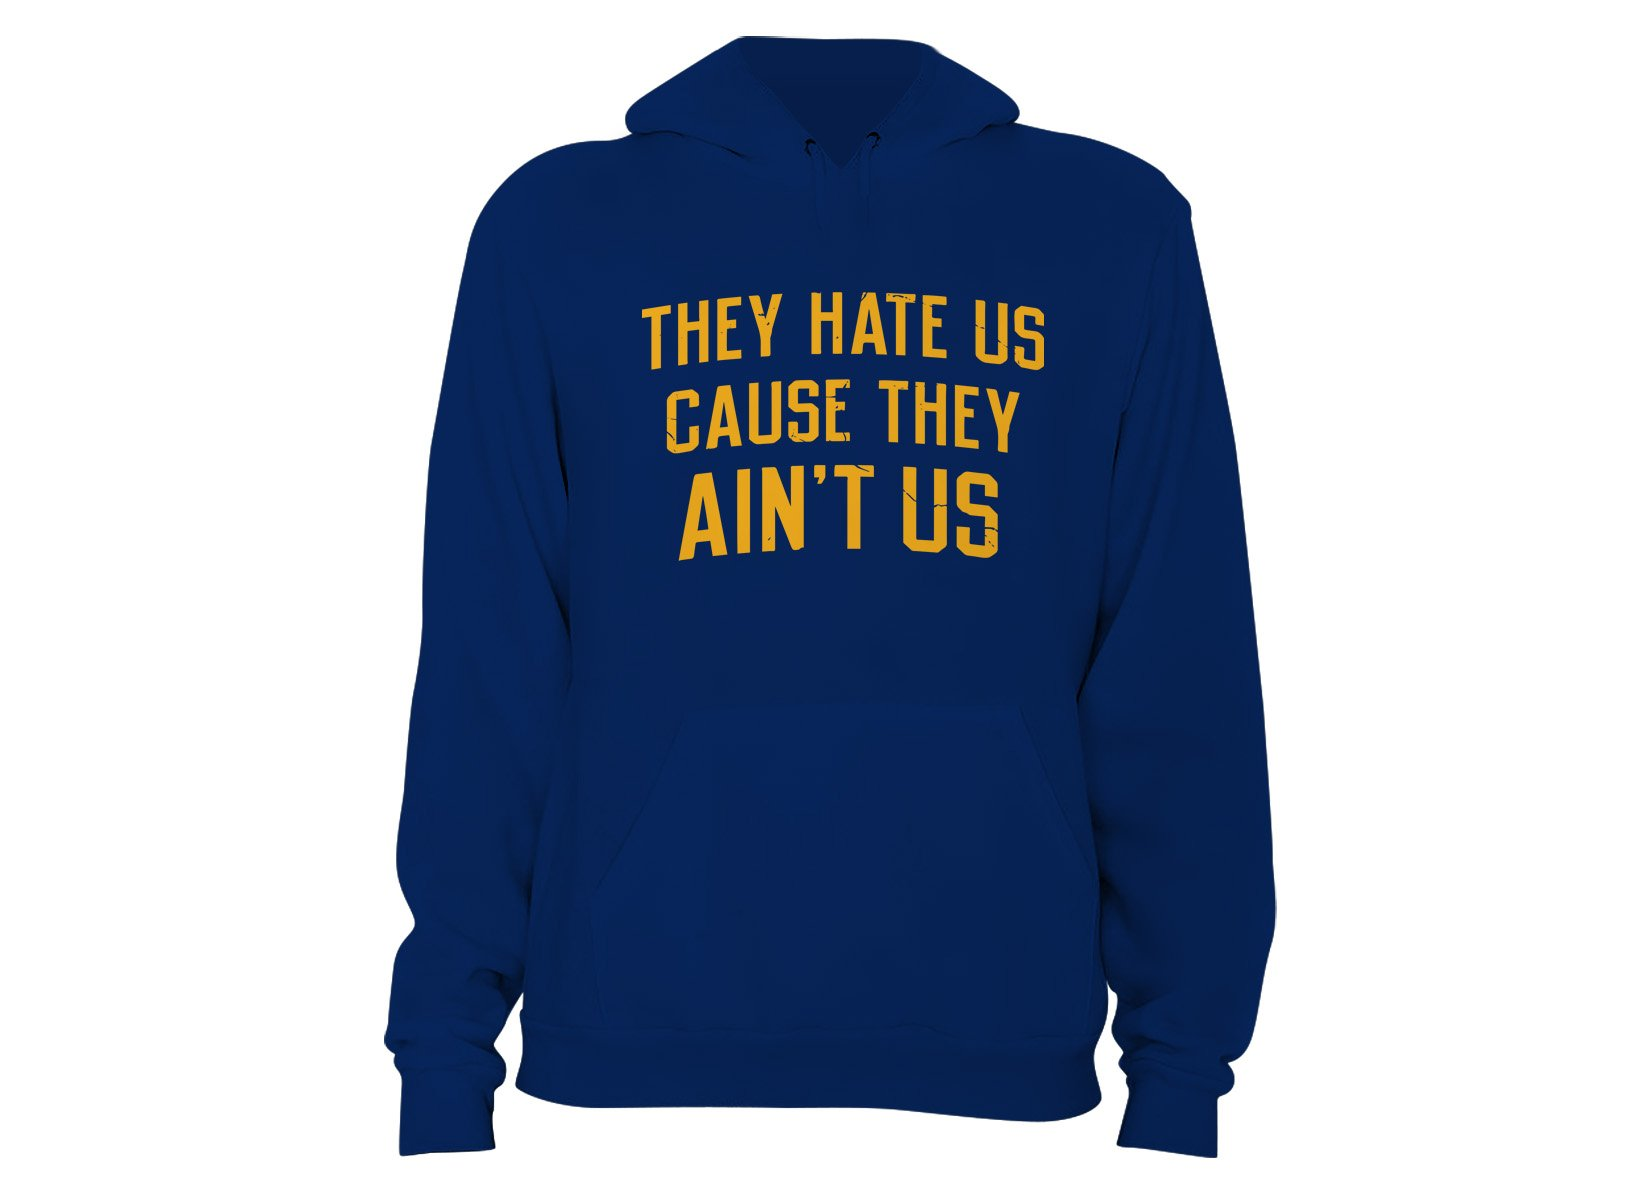 They Hate Us Cause They Ain't Us on Hoodie